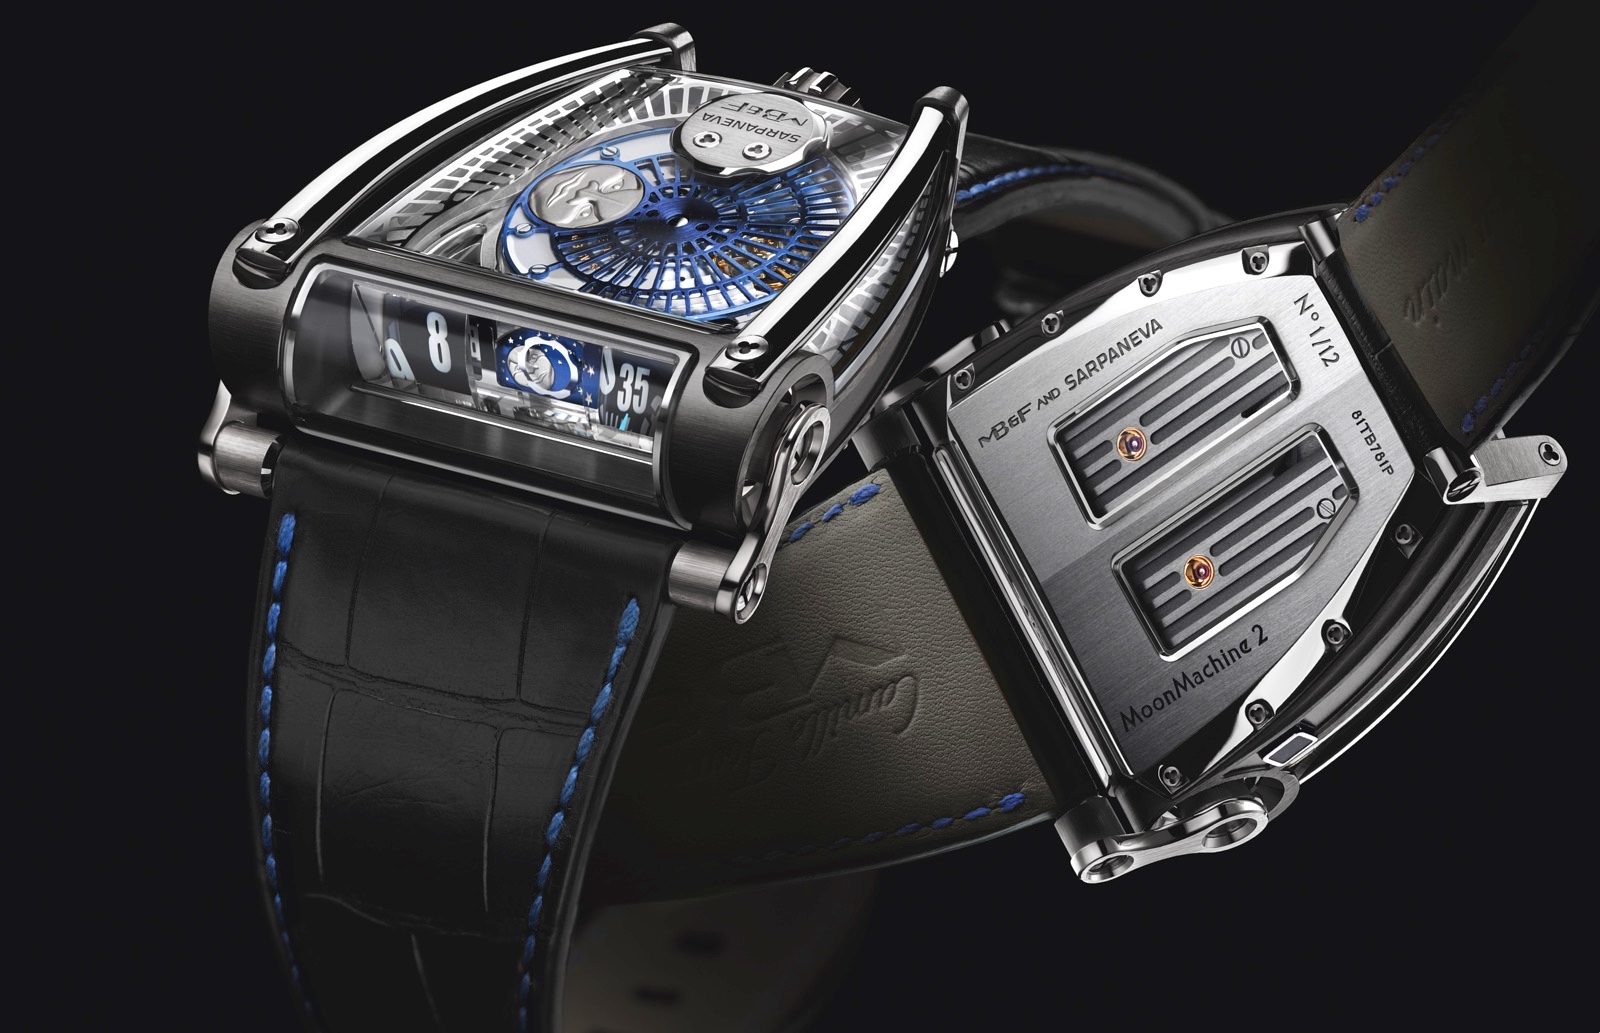 MB&F MoonMachine 2 SIHH 2018